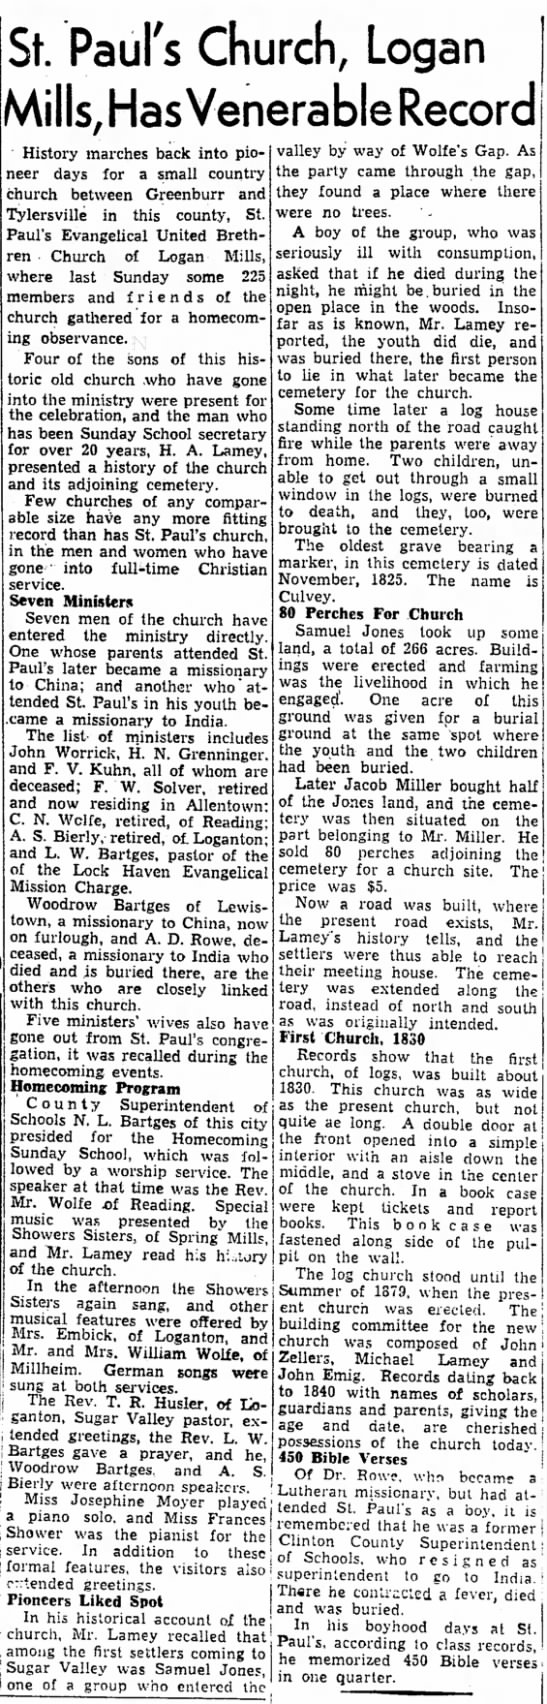 Logan Mills Church history Aug 23 1947 - St. Paul's Church, Logan Mills, Has Venerable...